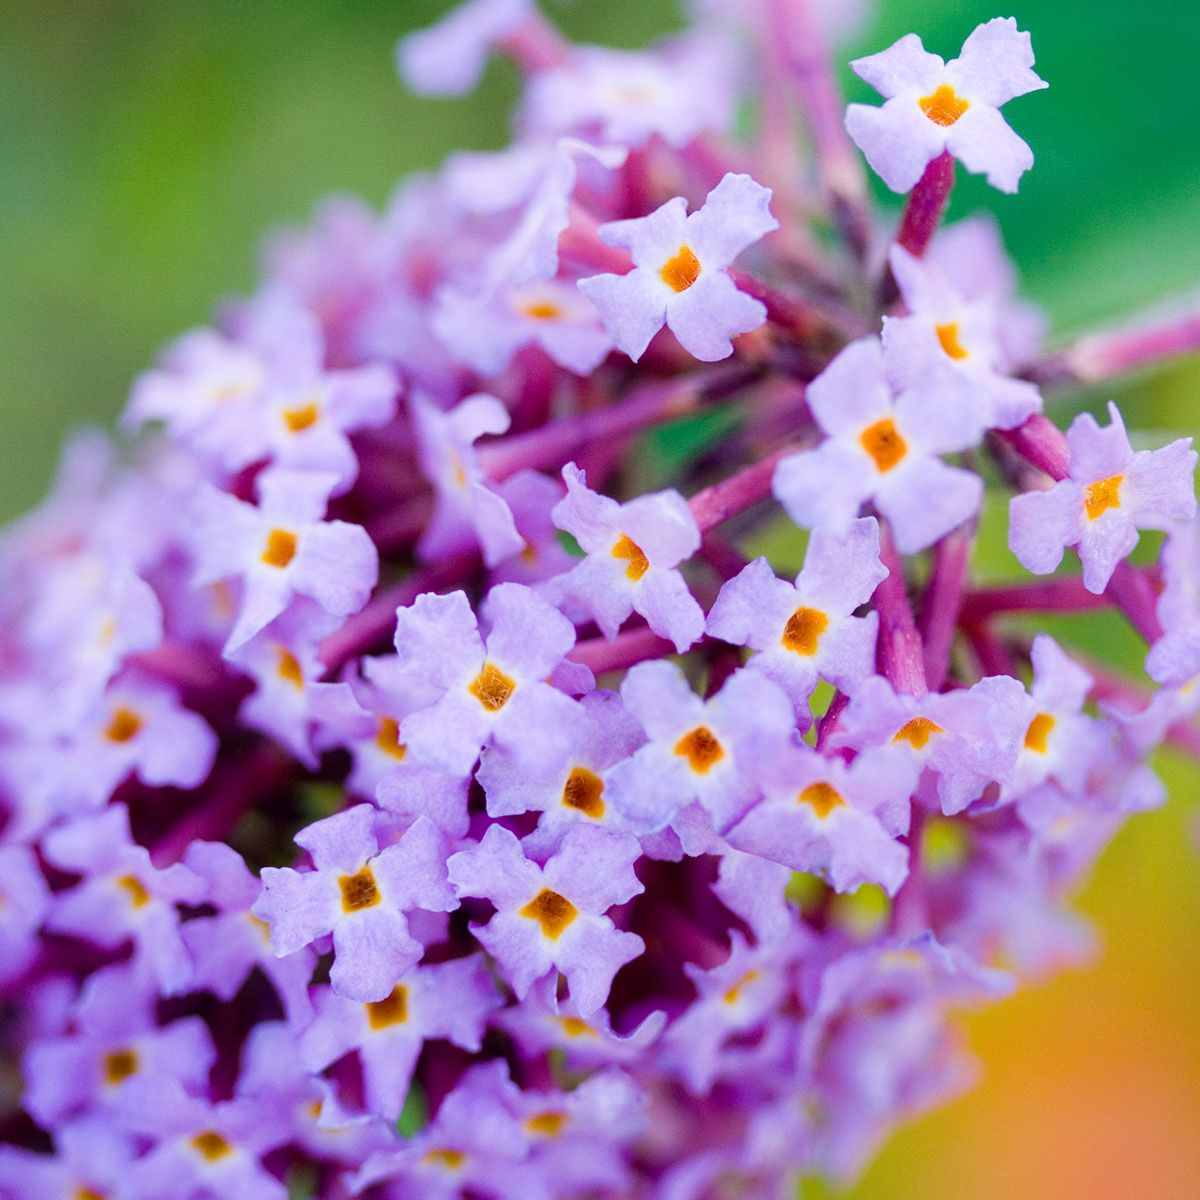 Butterfly Bush - Buddleja davidii14